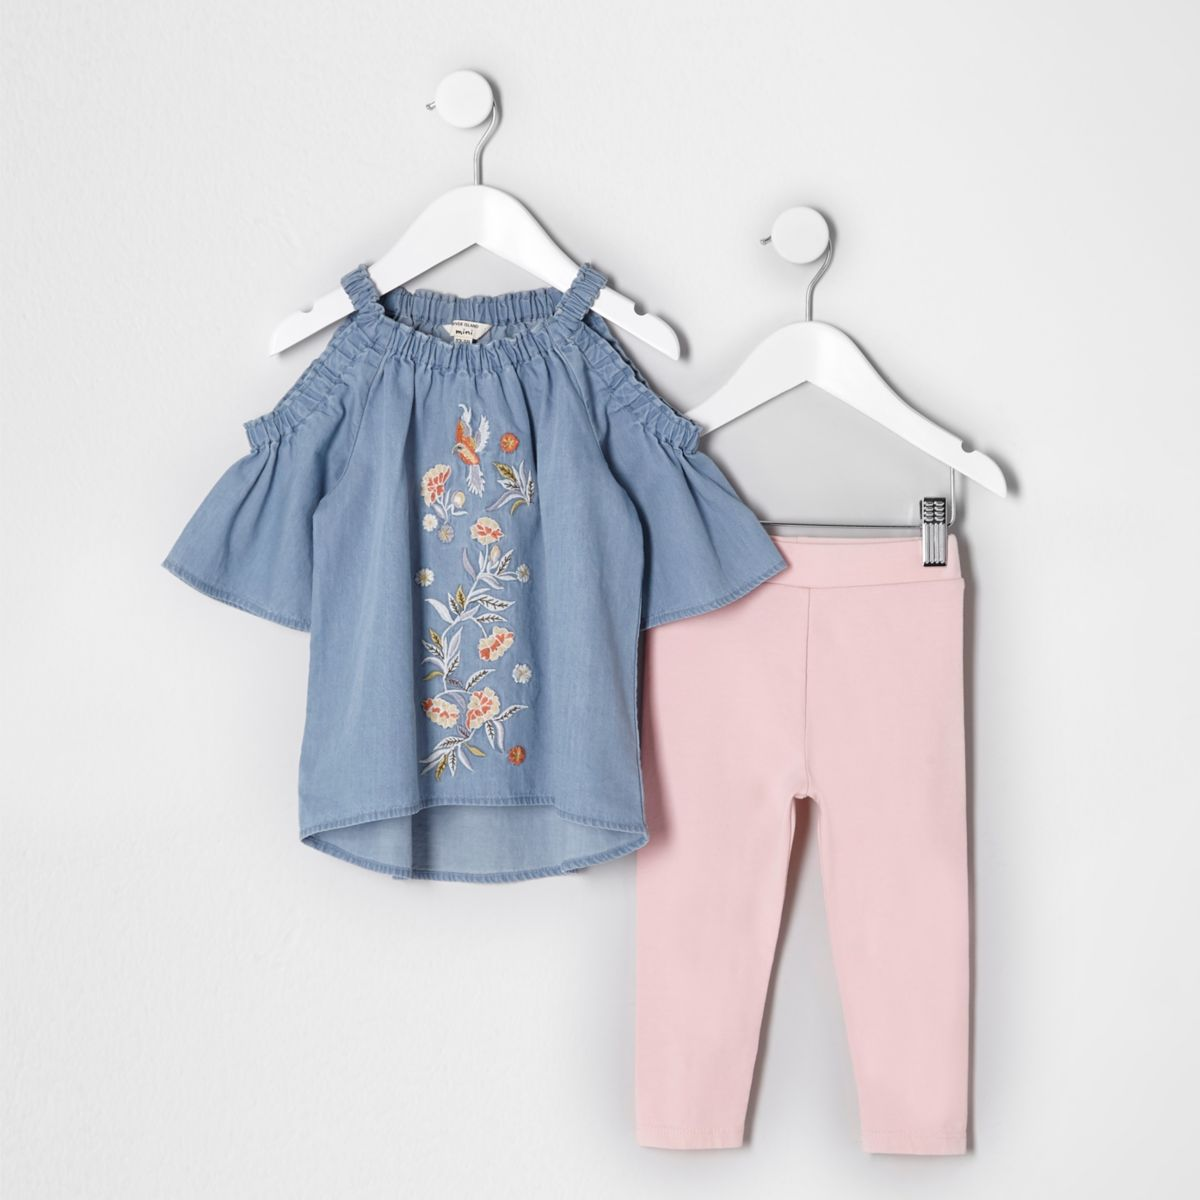 Mini girls blue embroidered denim top outfit